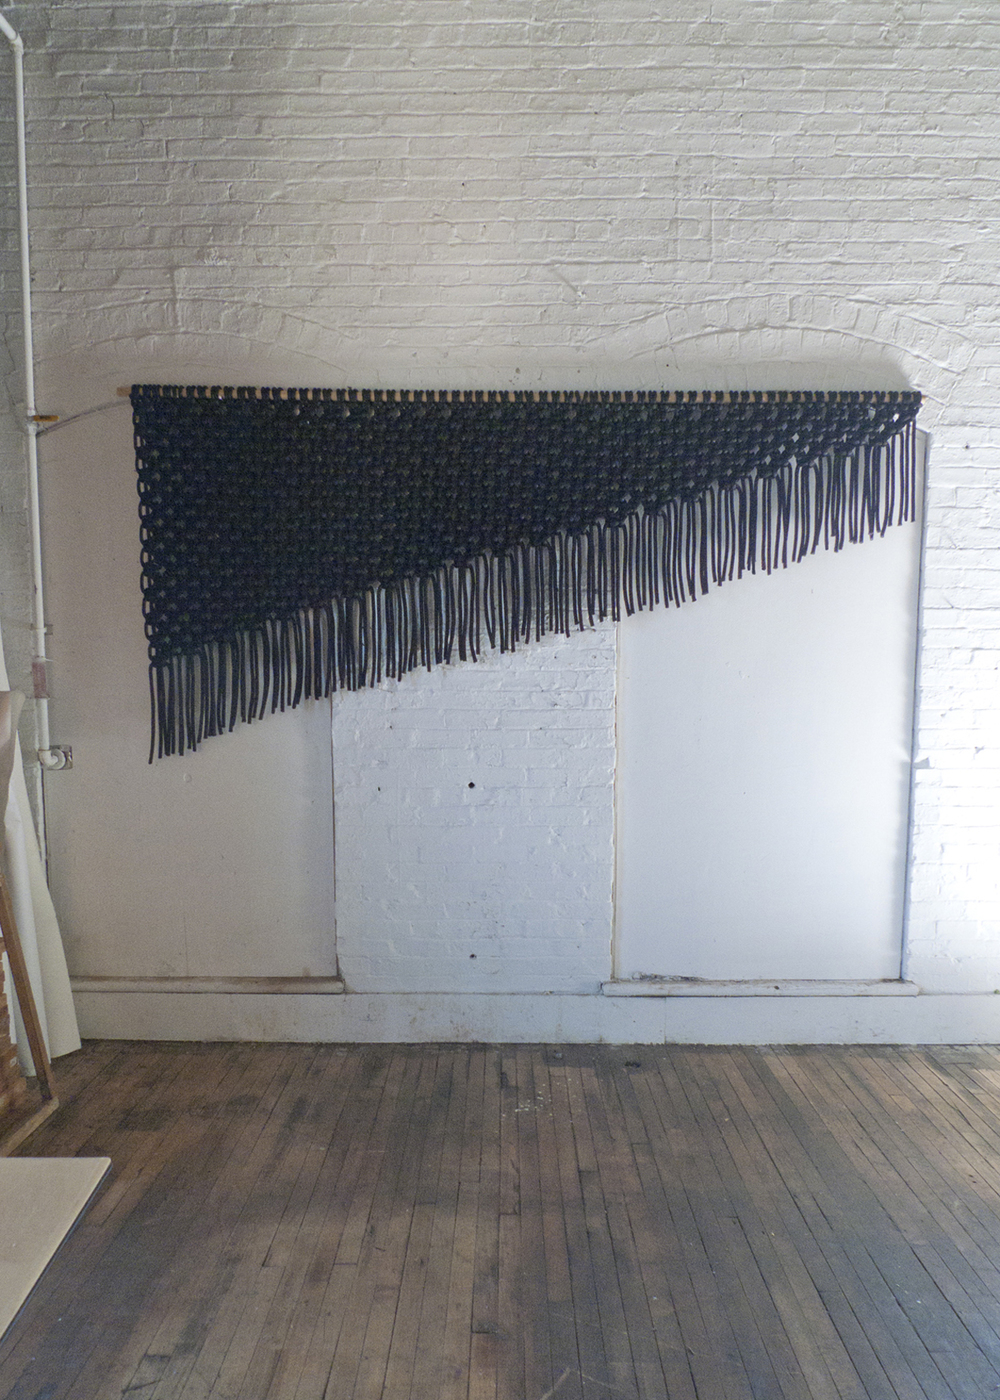 5' x 10' . Nylon cord. 2013.  Wall hanging created for ACE Hotel in Shoreditch, London. Opening September 2013.